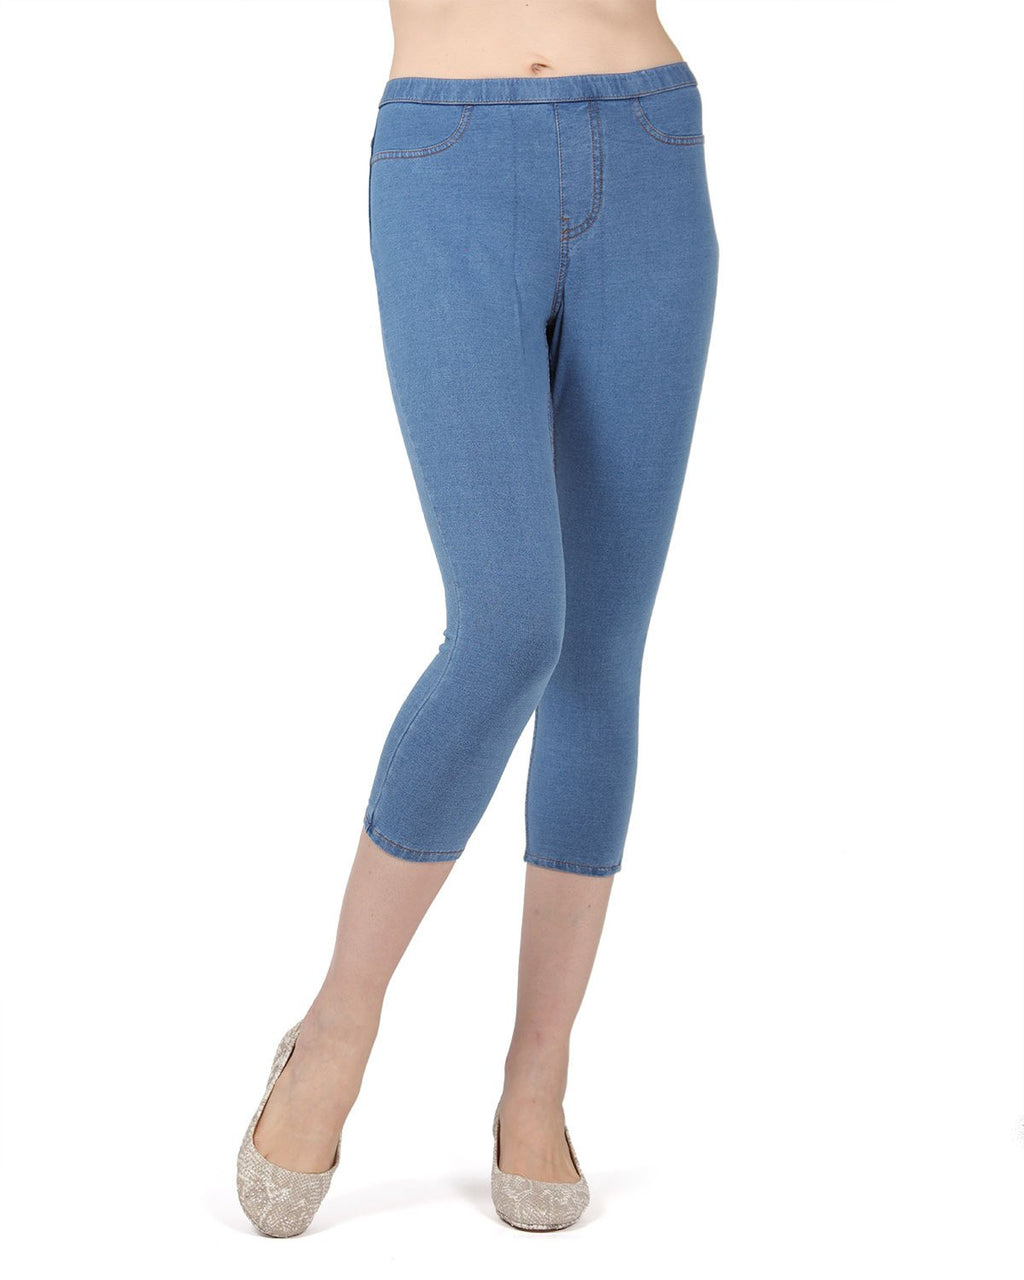 MeMoi Light Wash Priga Denim Capri Jean Leggings | Women's Premium Jean Leggings